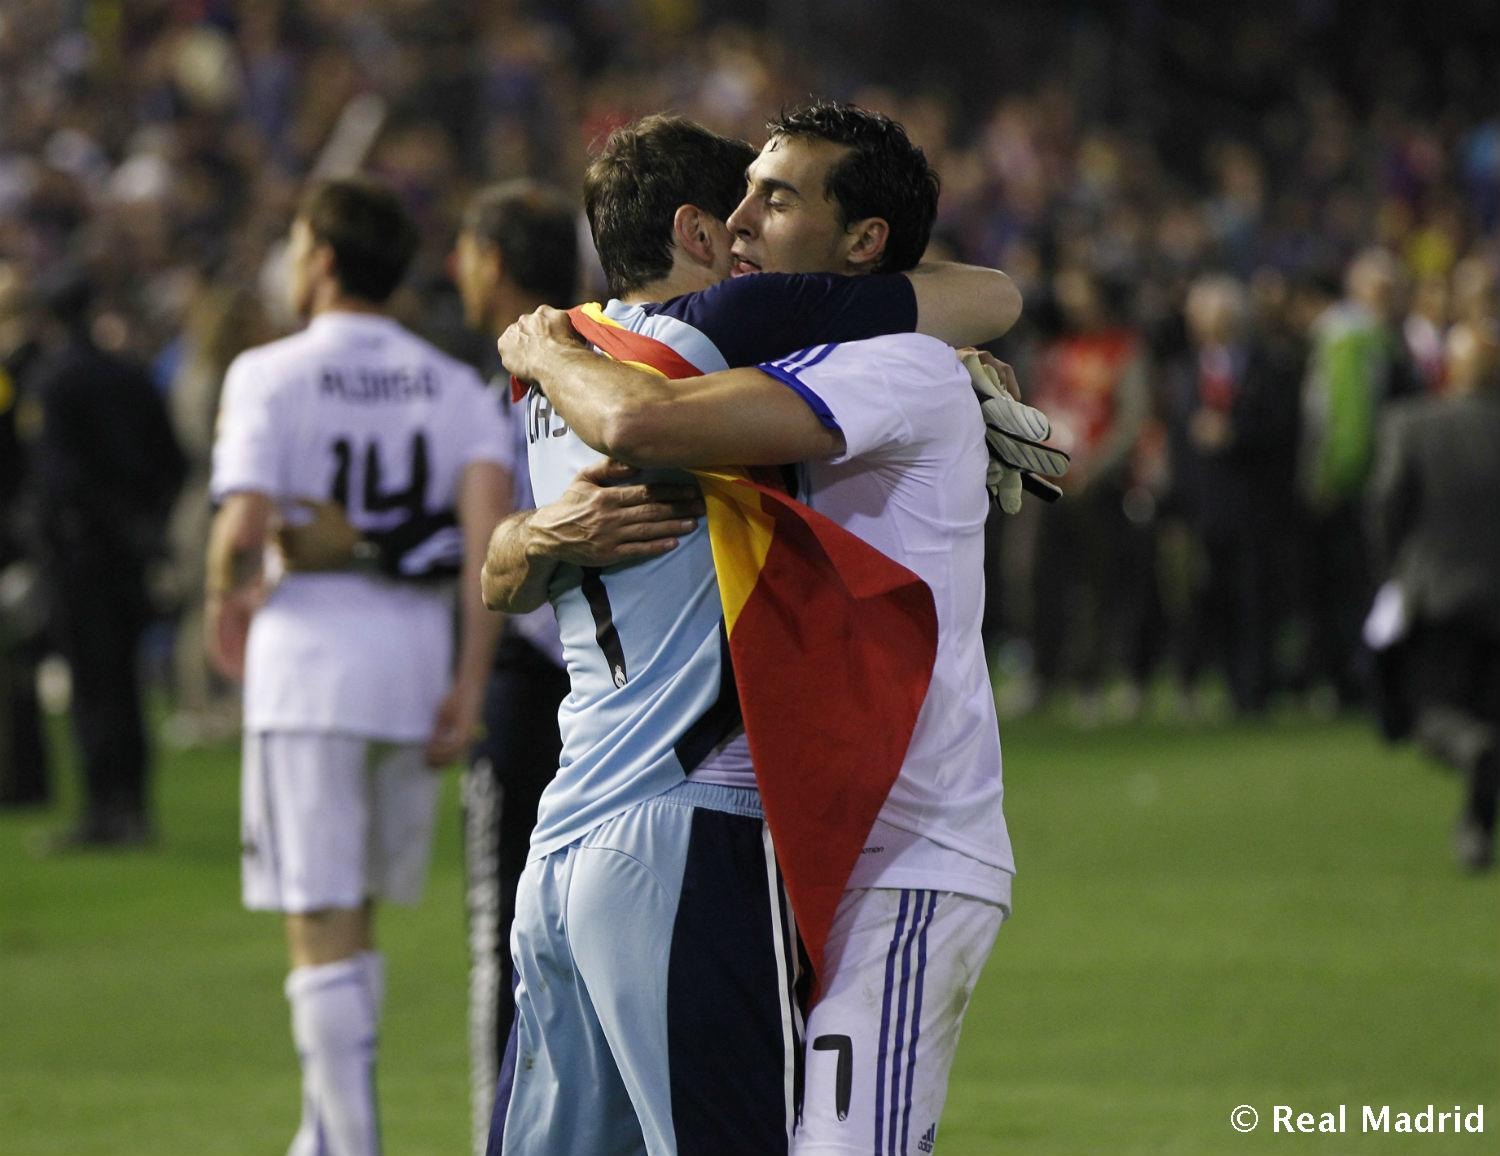 Real Madrid - Arbeloa e Iker Casillas - 27-01-2014